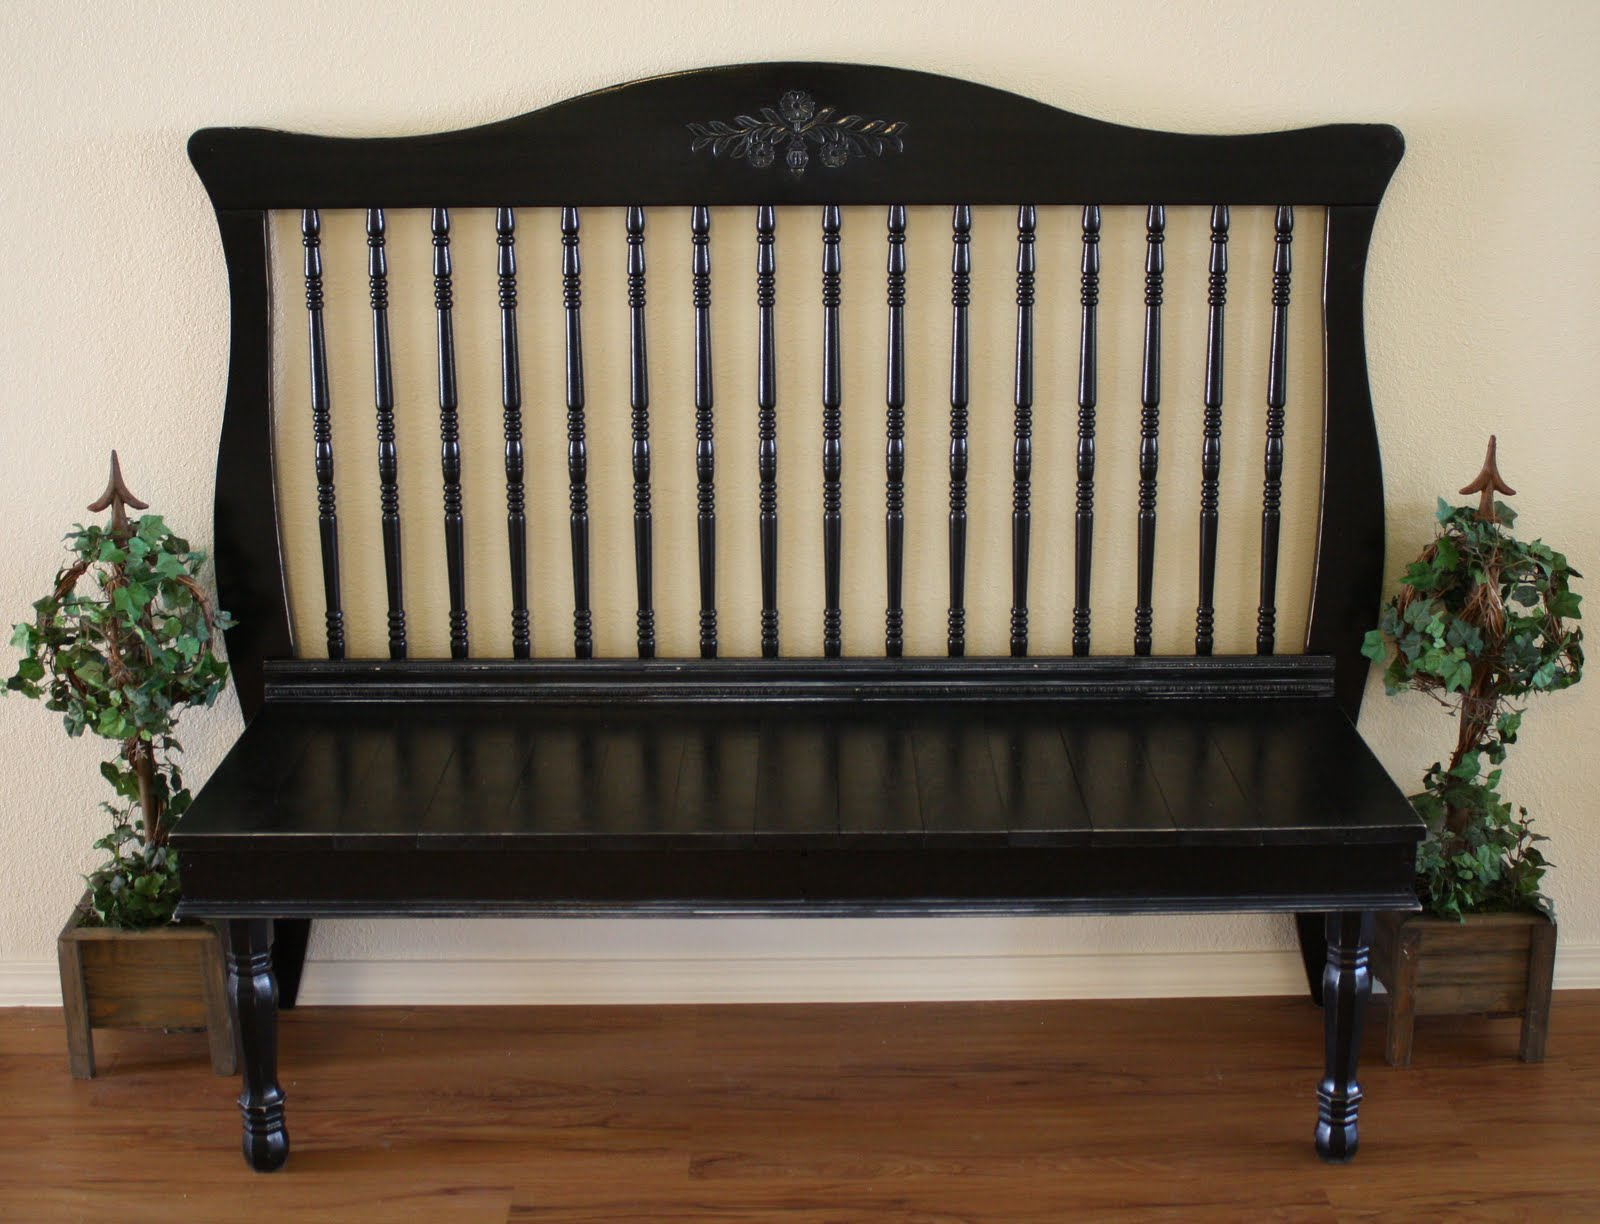 Turn a Crib Into a Bench | Repurpose Furniture: The Best Way To Upgrade Your Home Living Economically